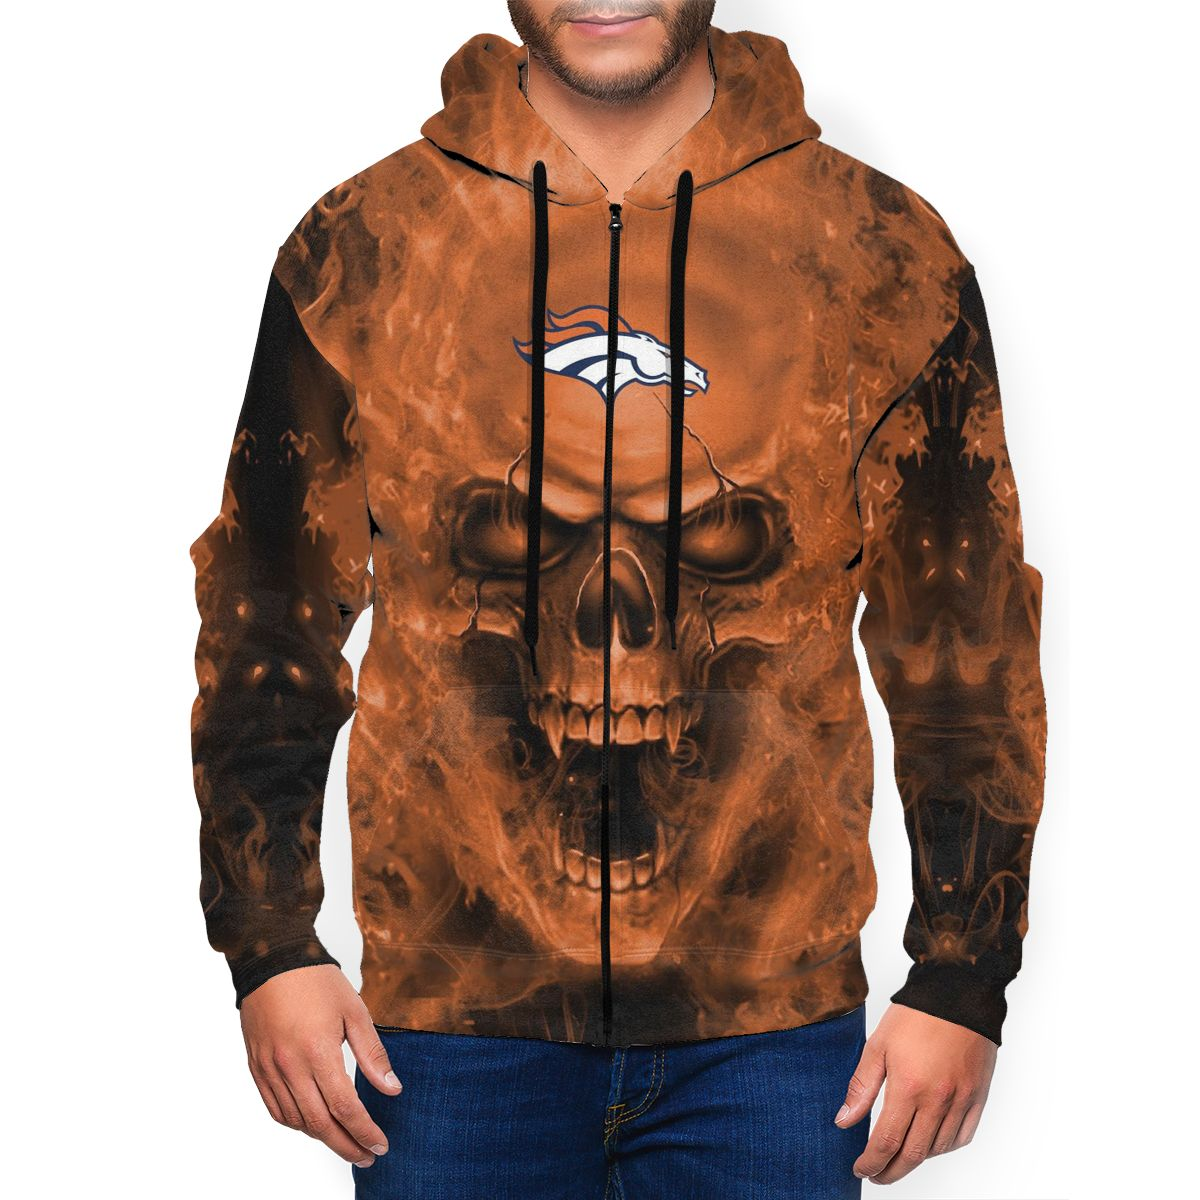 3D Skull Broncos Men's Zip Hooded Sweatshirt